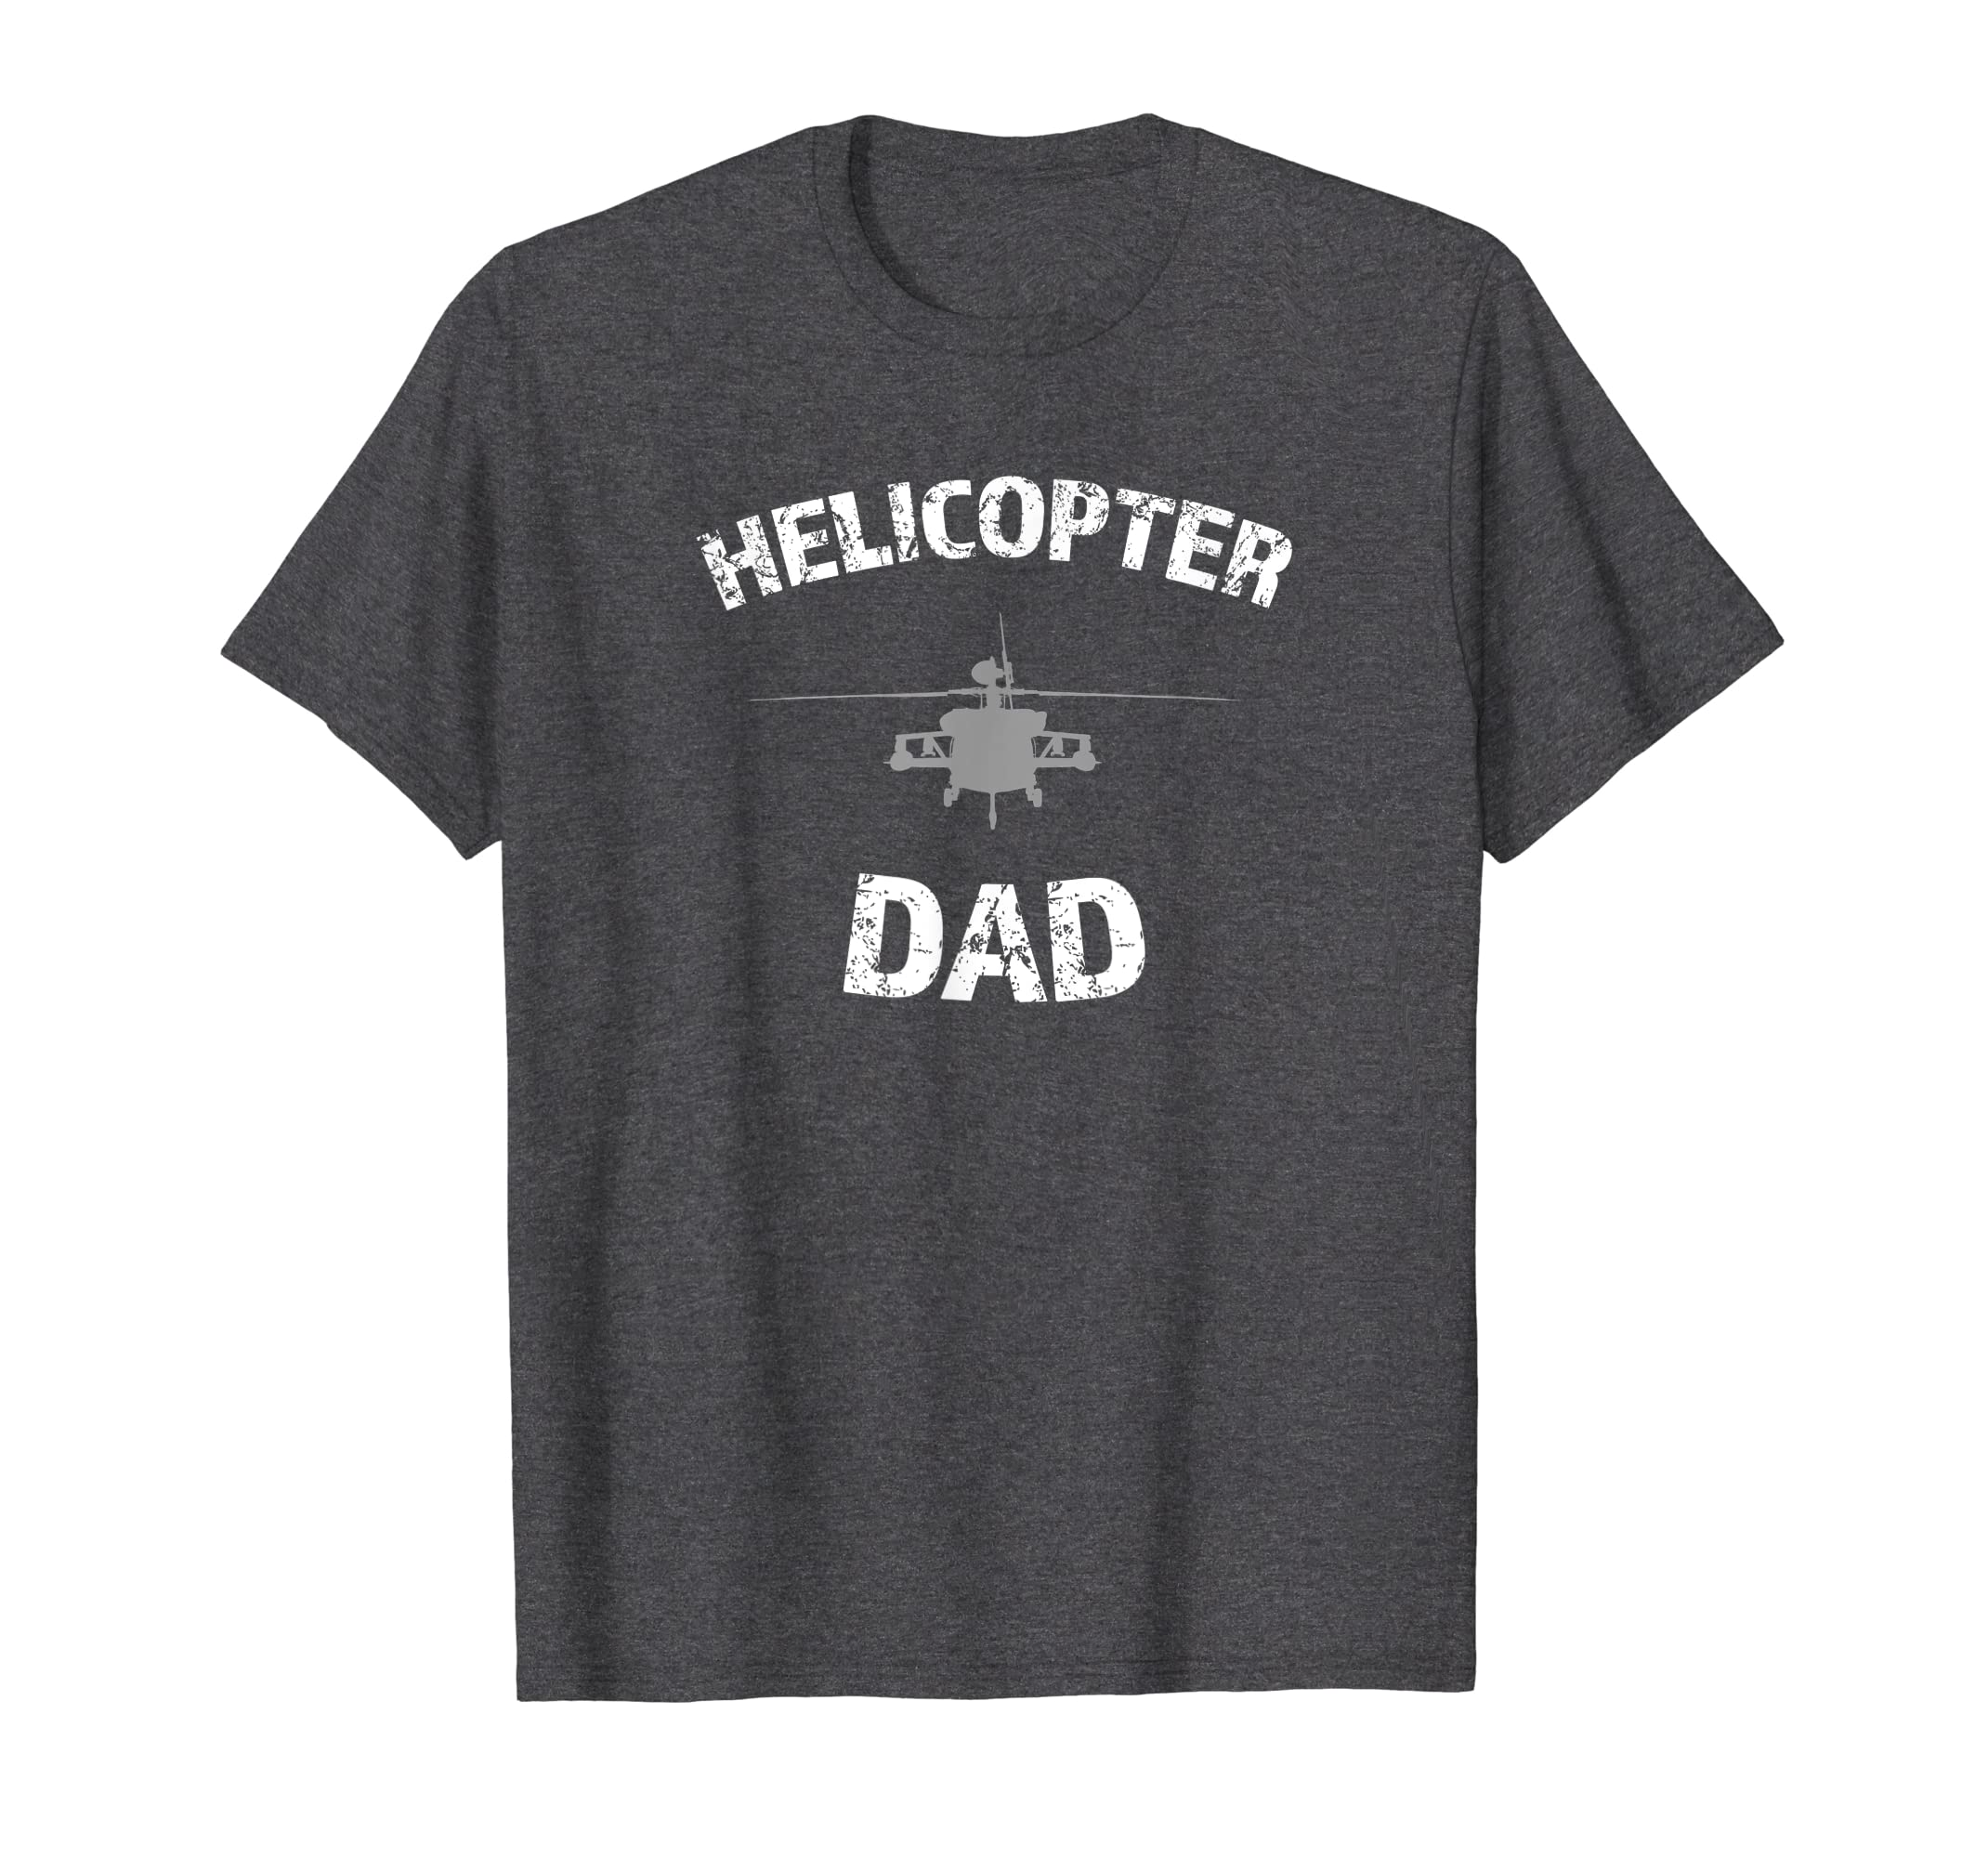 d0923ac4 Amazon.com: Helicopter Dad Shirt - Helicopter Parent: Clothing